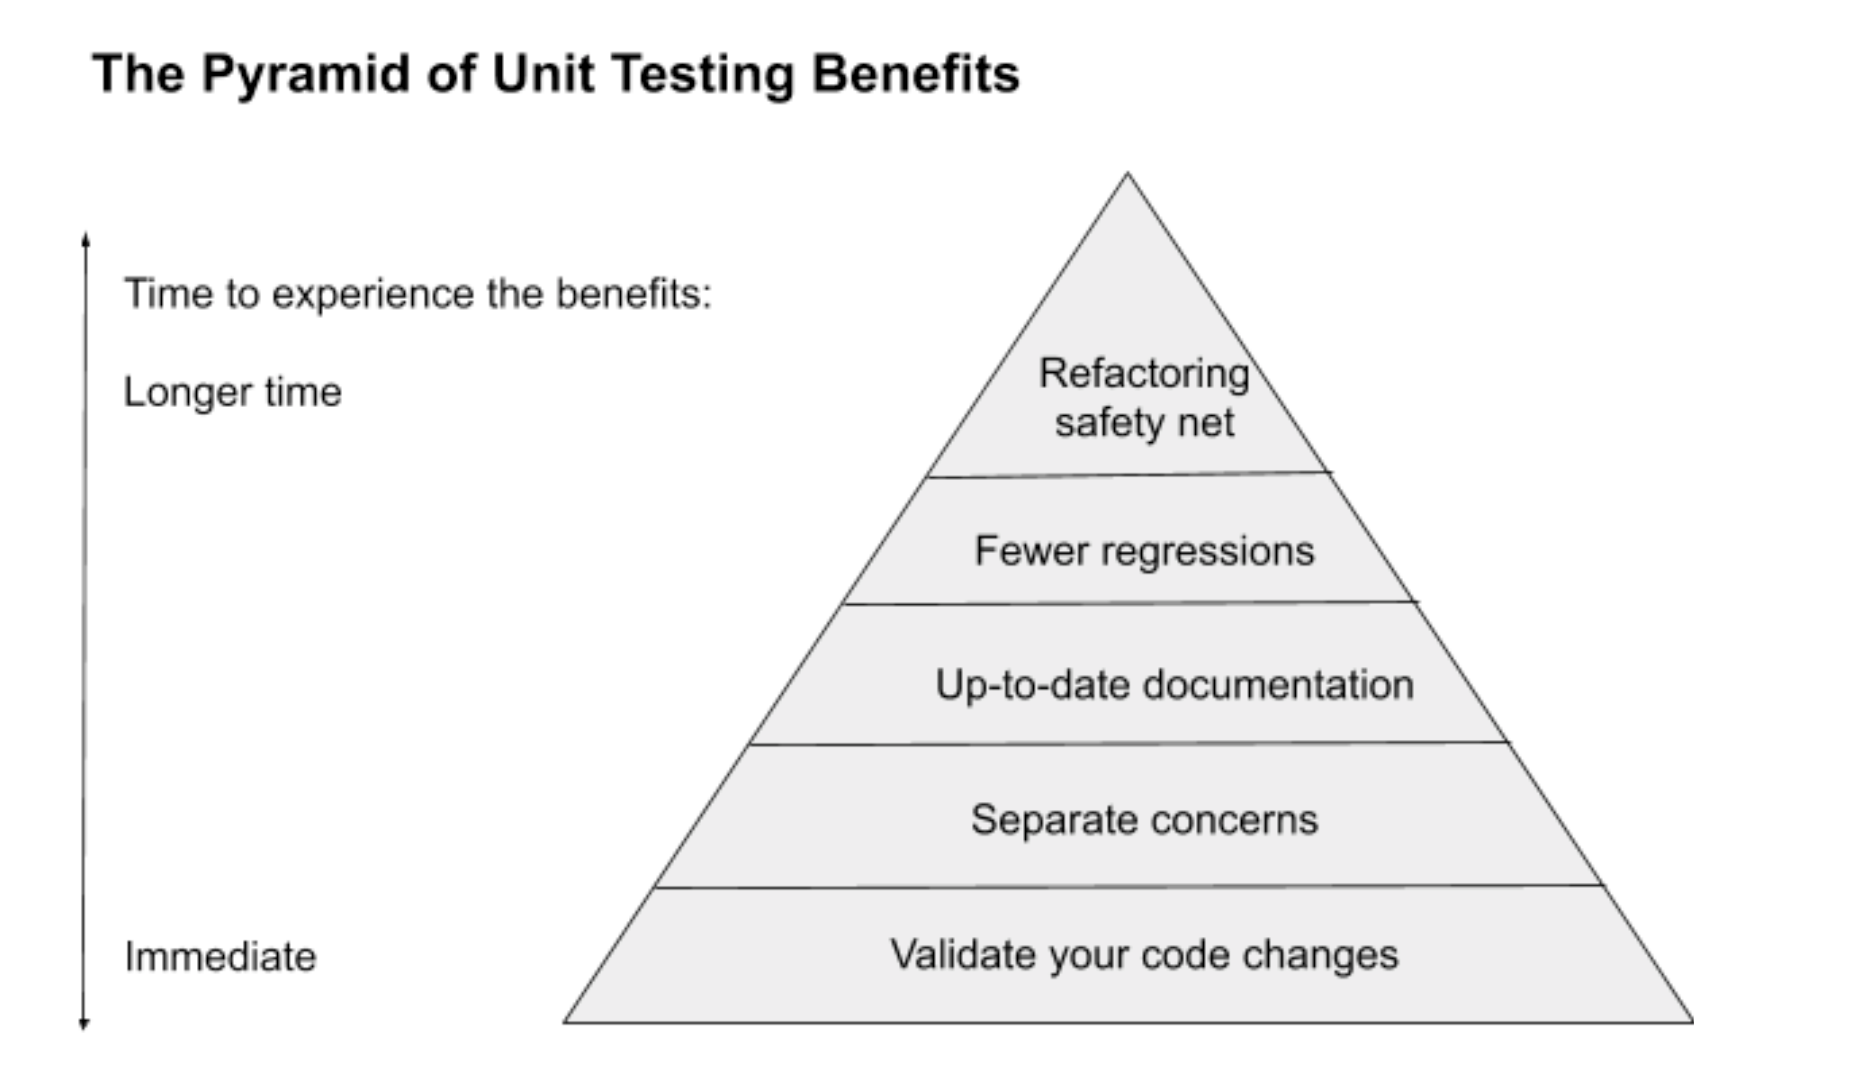 The Pyramid of Unit Testing Benefits